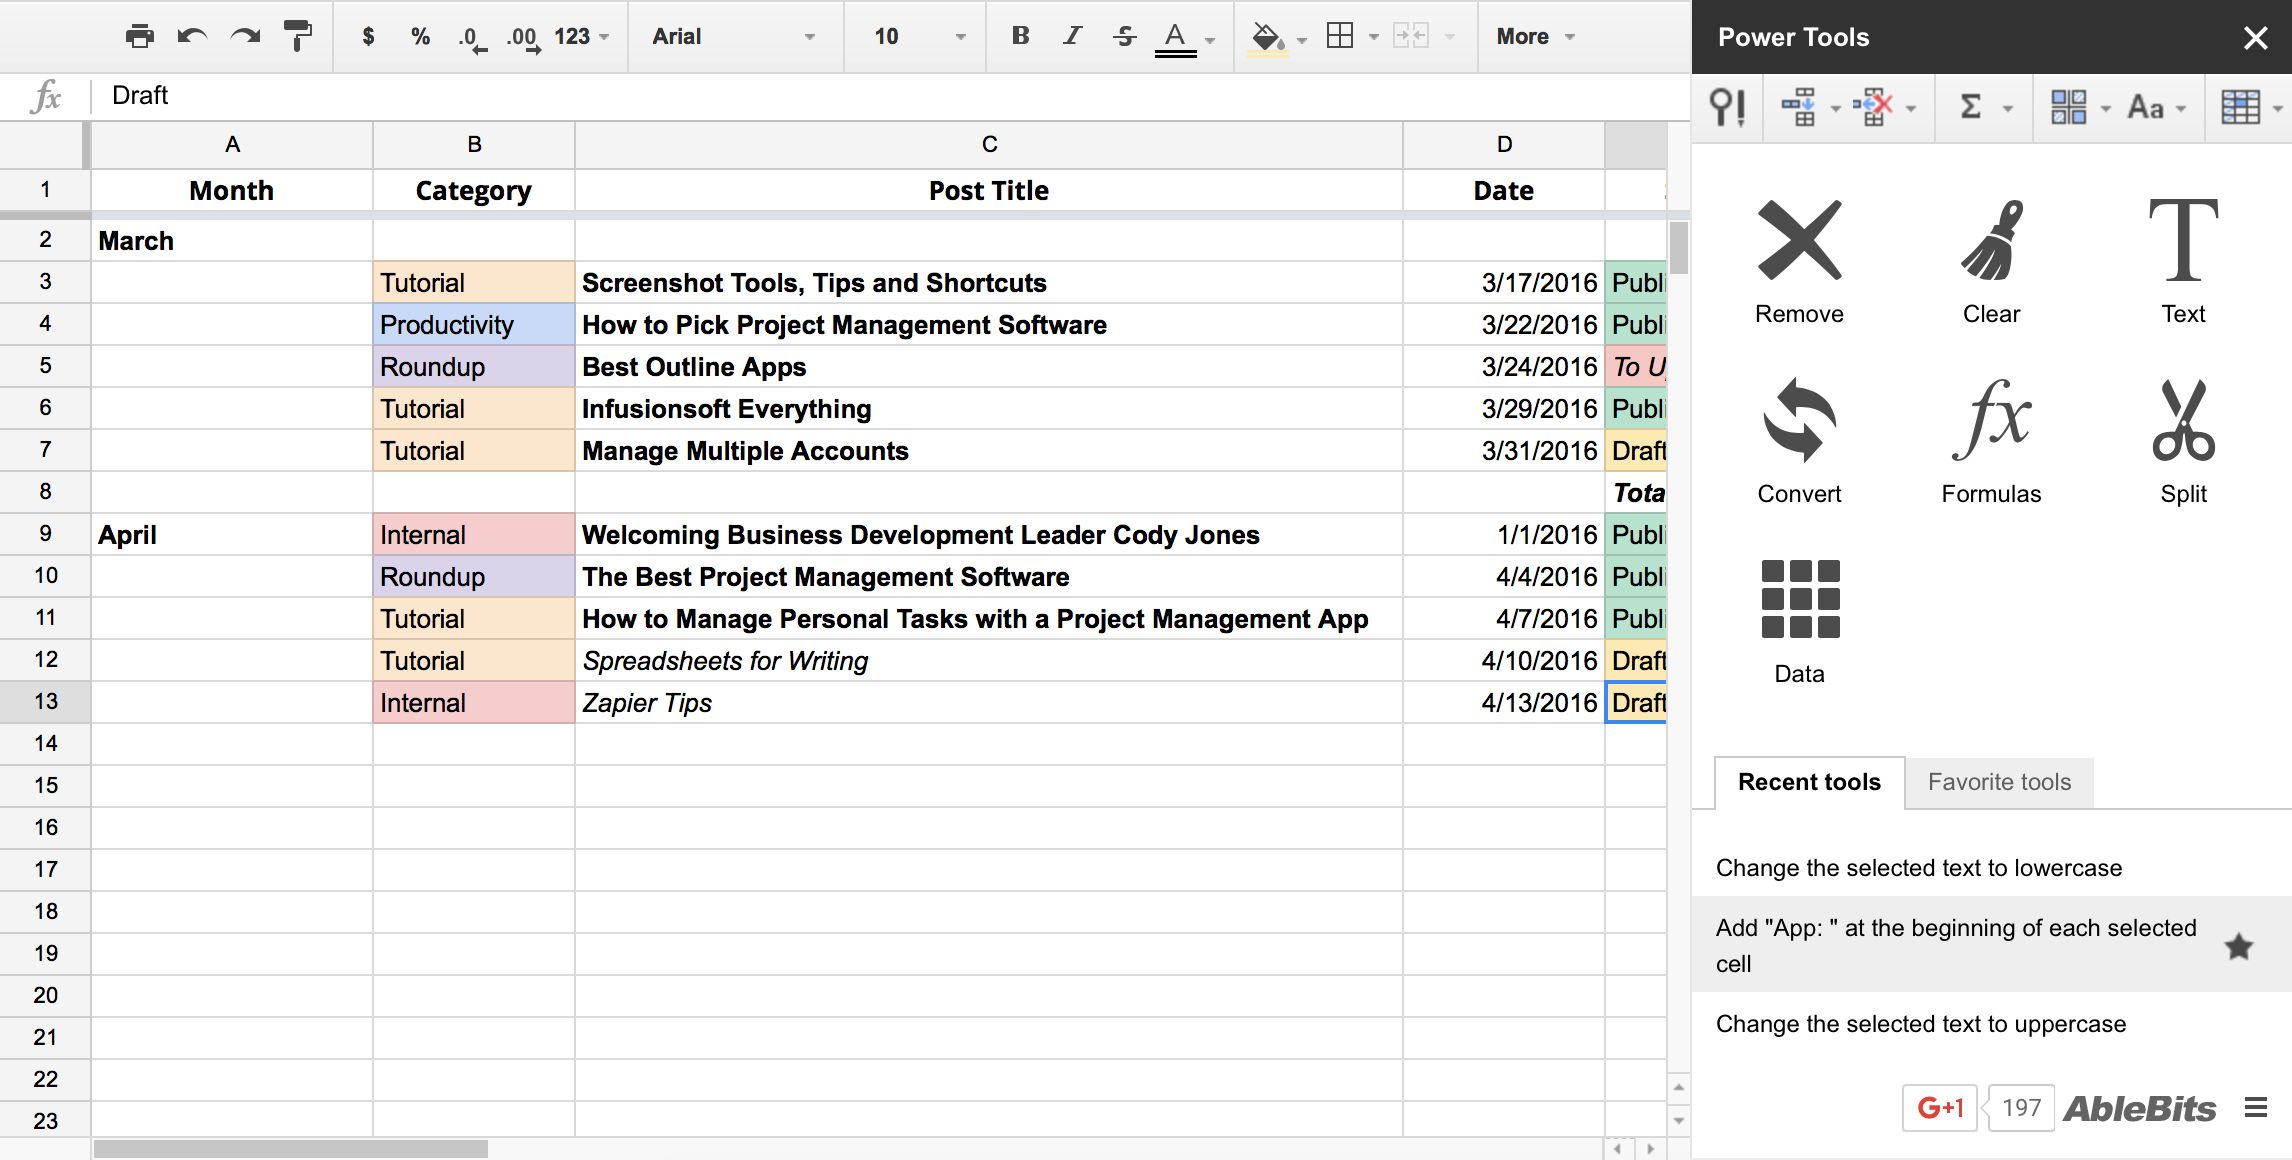 Power Tools in Google Sheets